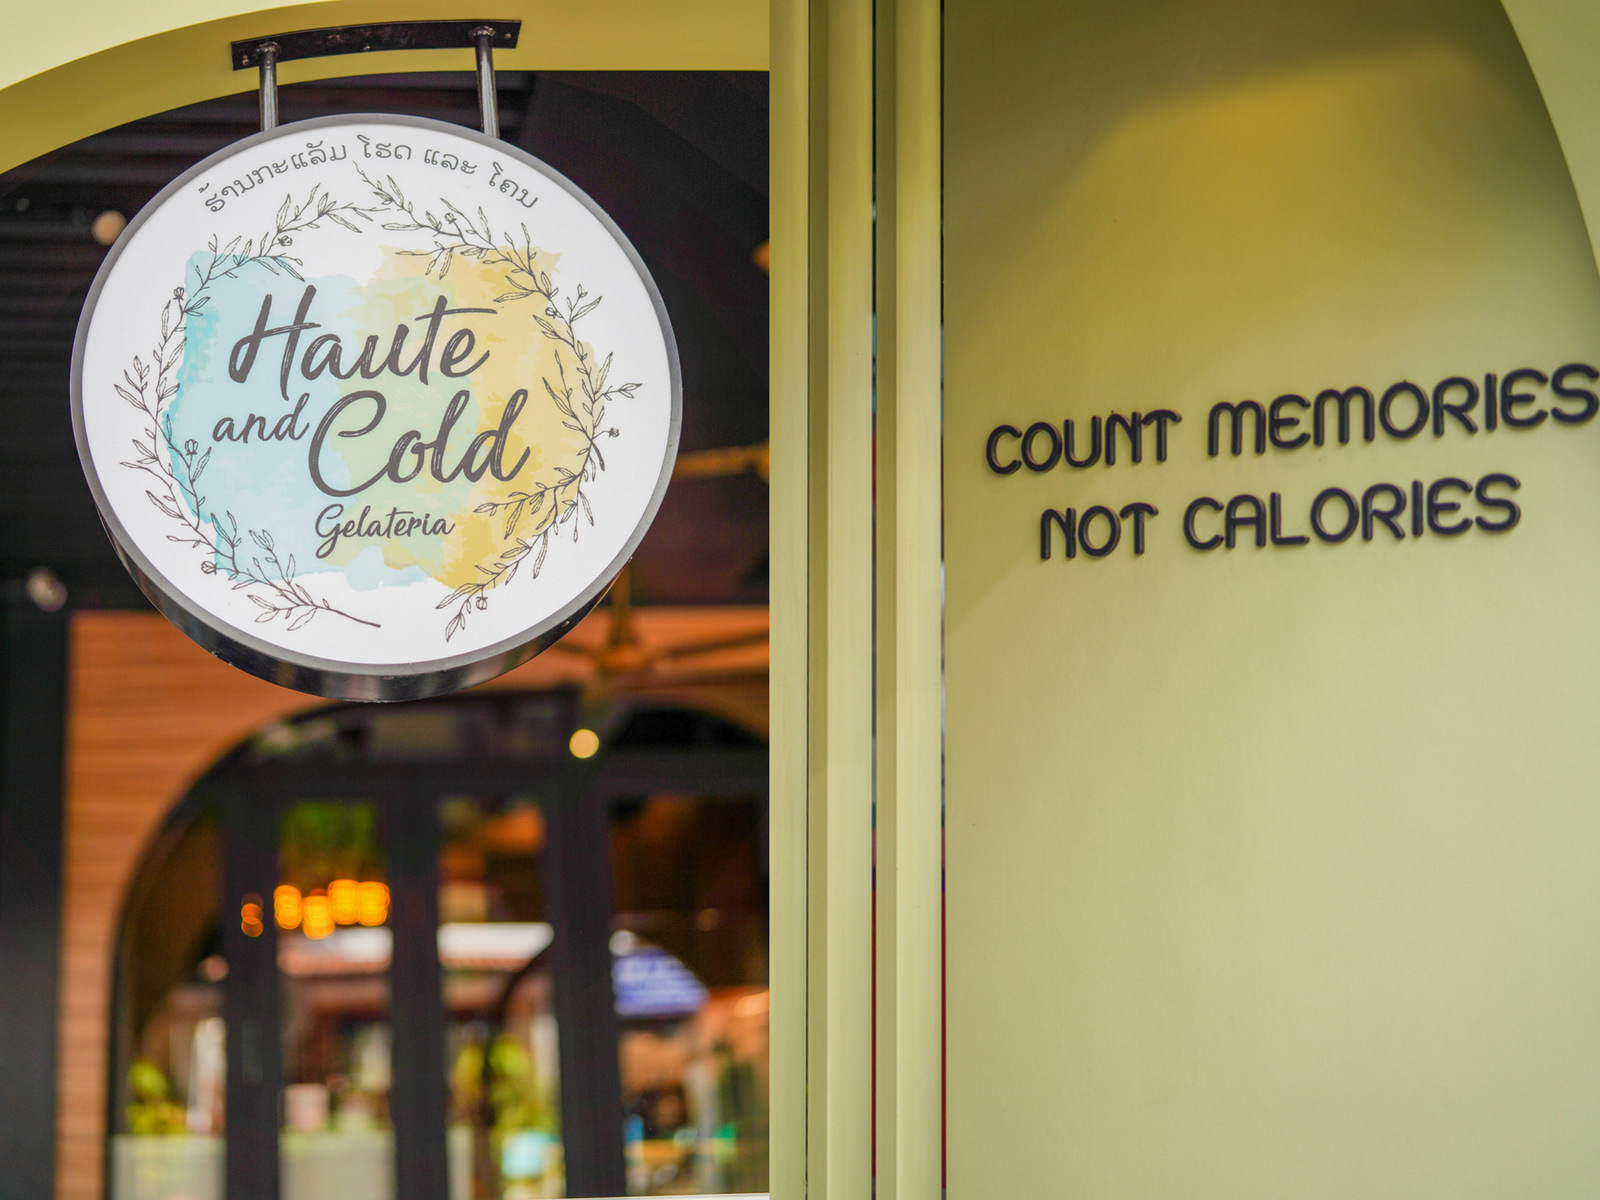 Haute & Cold Gelateria, Laos